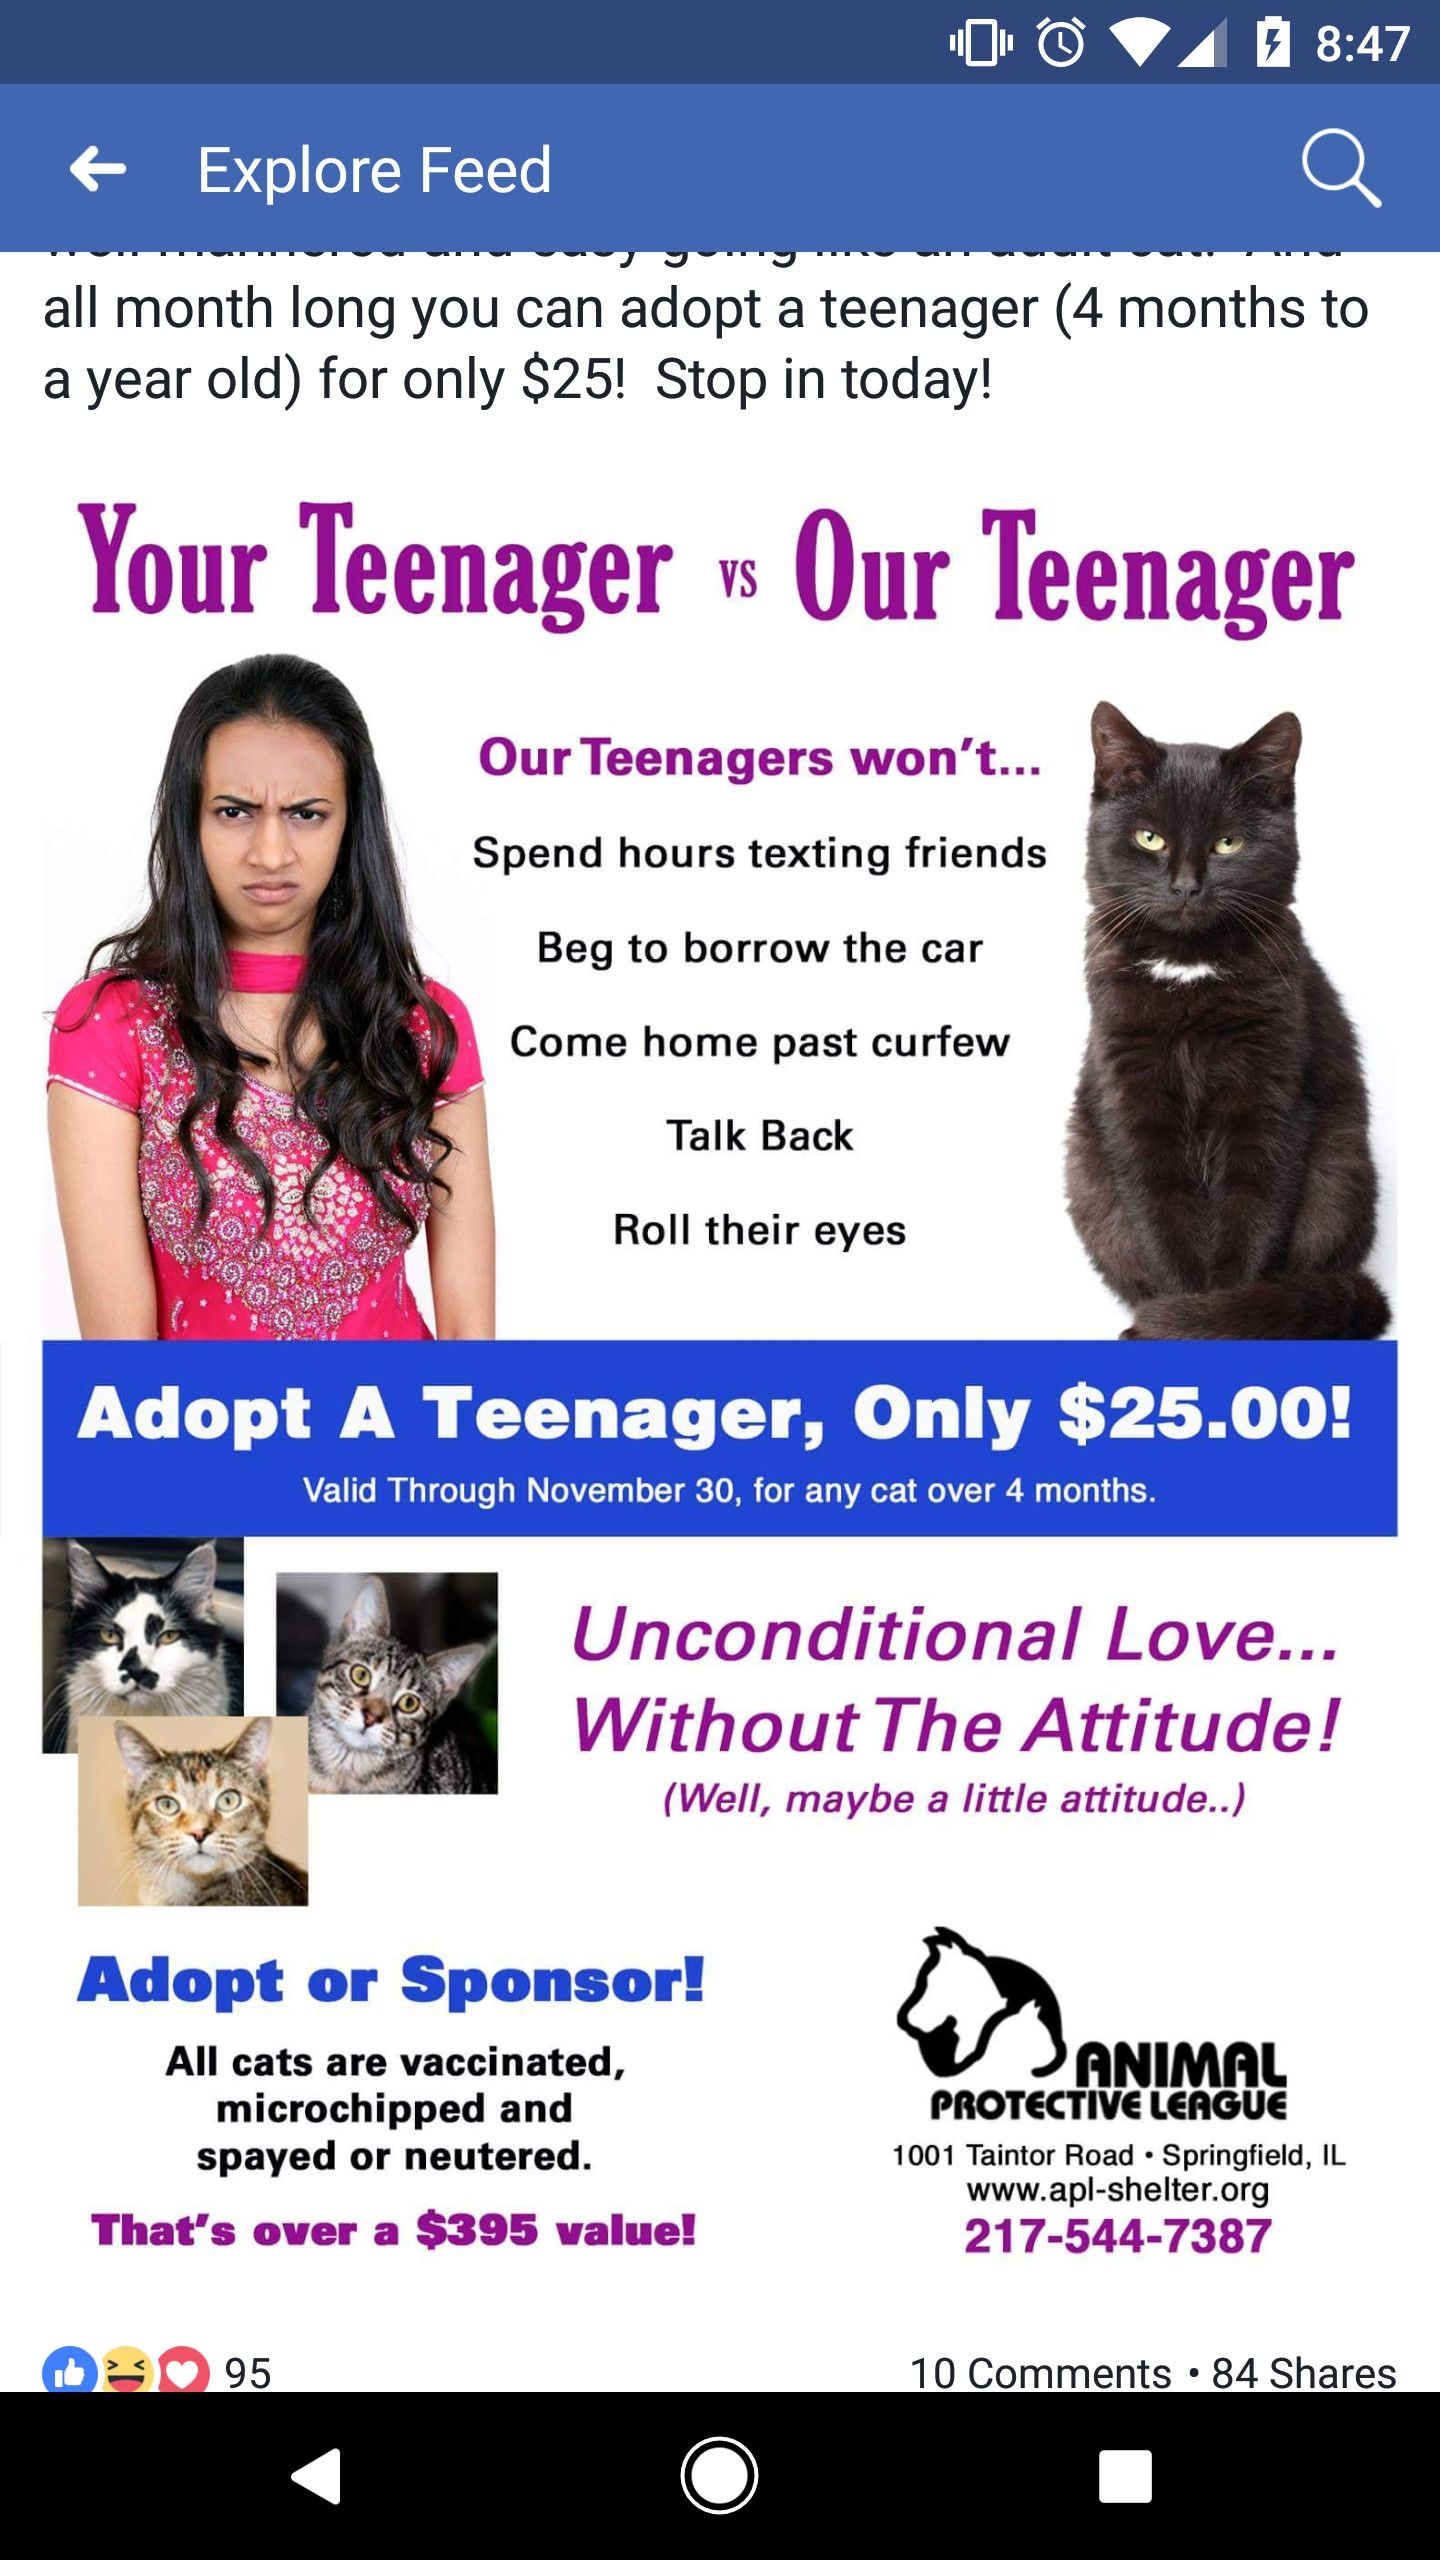 Made Me Chuckle Http Ift Tt 2aqmrrp Animal Shelter Design Cat Adoption Clever Dog